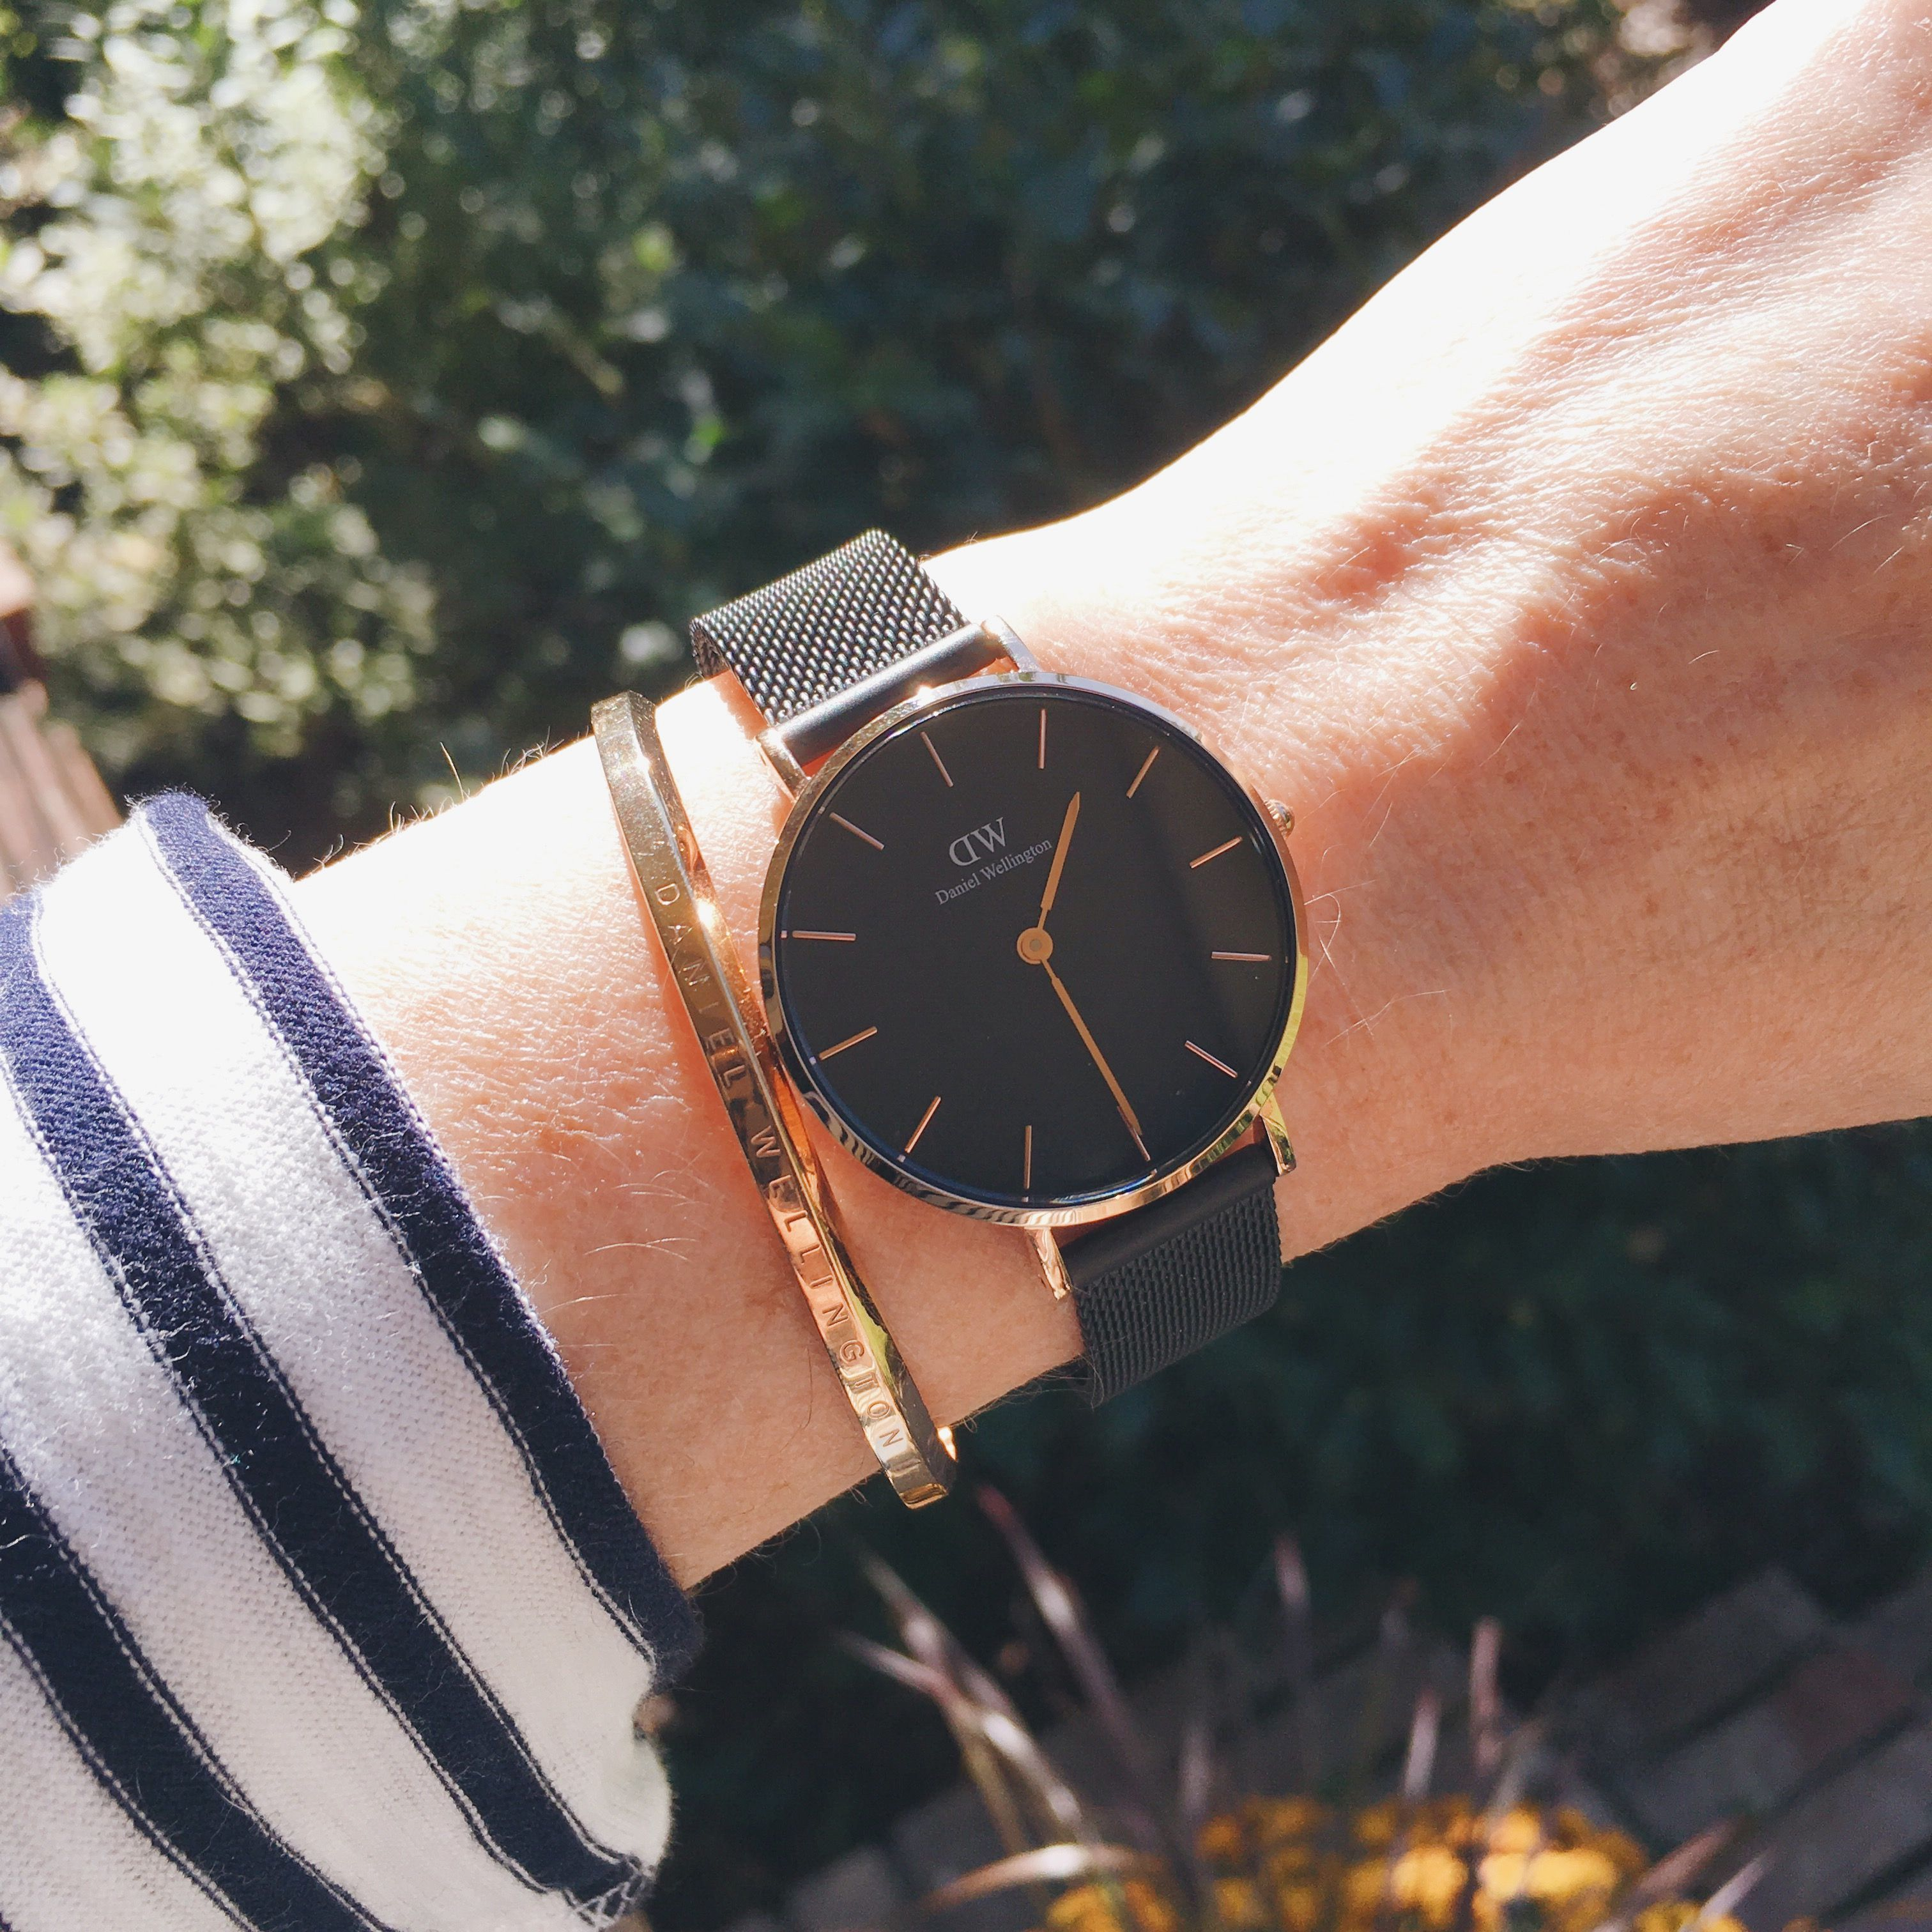 Meet The New Daniel Wellington Watch The Classic Petite Ashfield It Comes In Either Rose Gold Or Womens Watches Luxury Fashion Watches Silver Pocket Watch